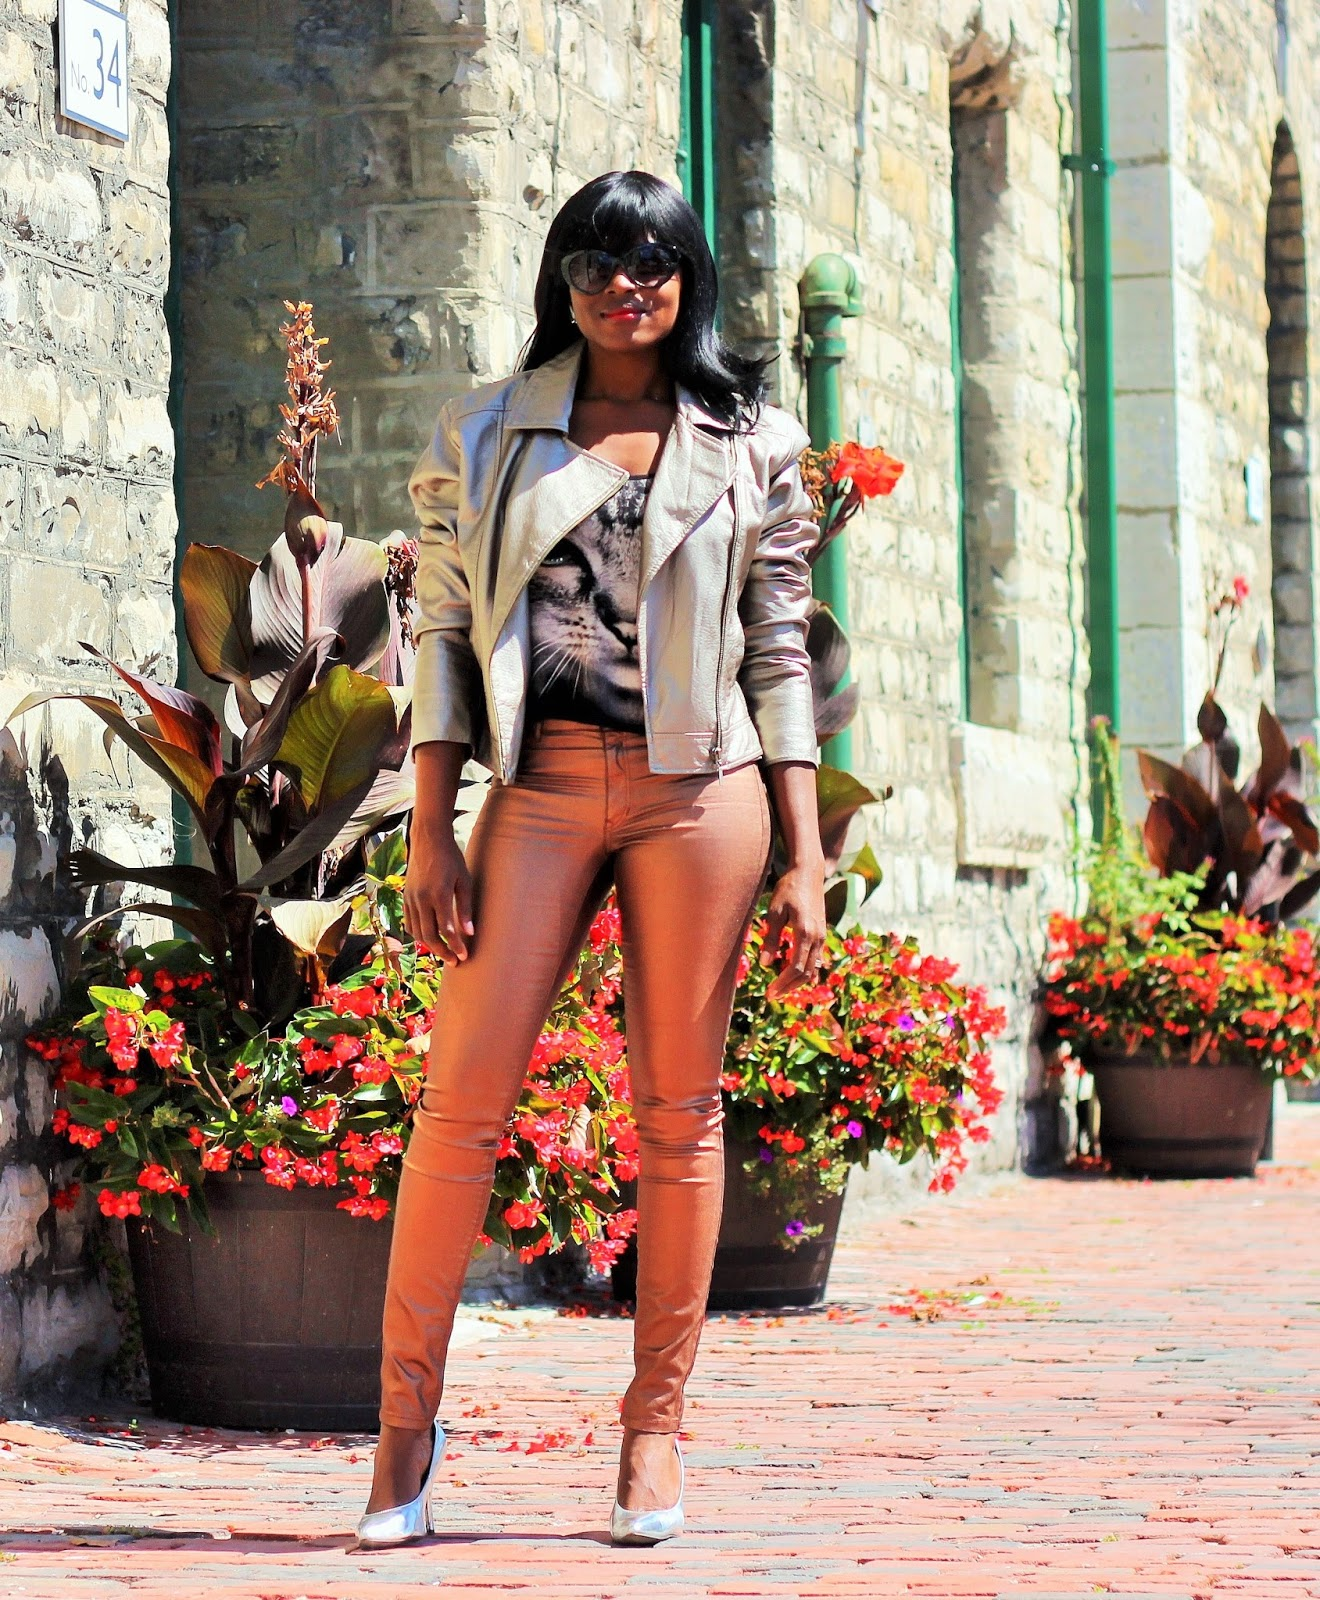 Metallic Gold Jacket Styled With Metallic Gold Pants & Graphic Top